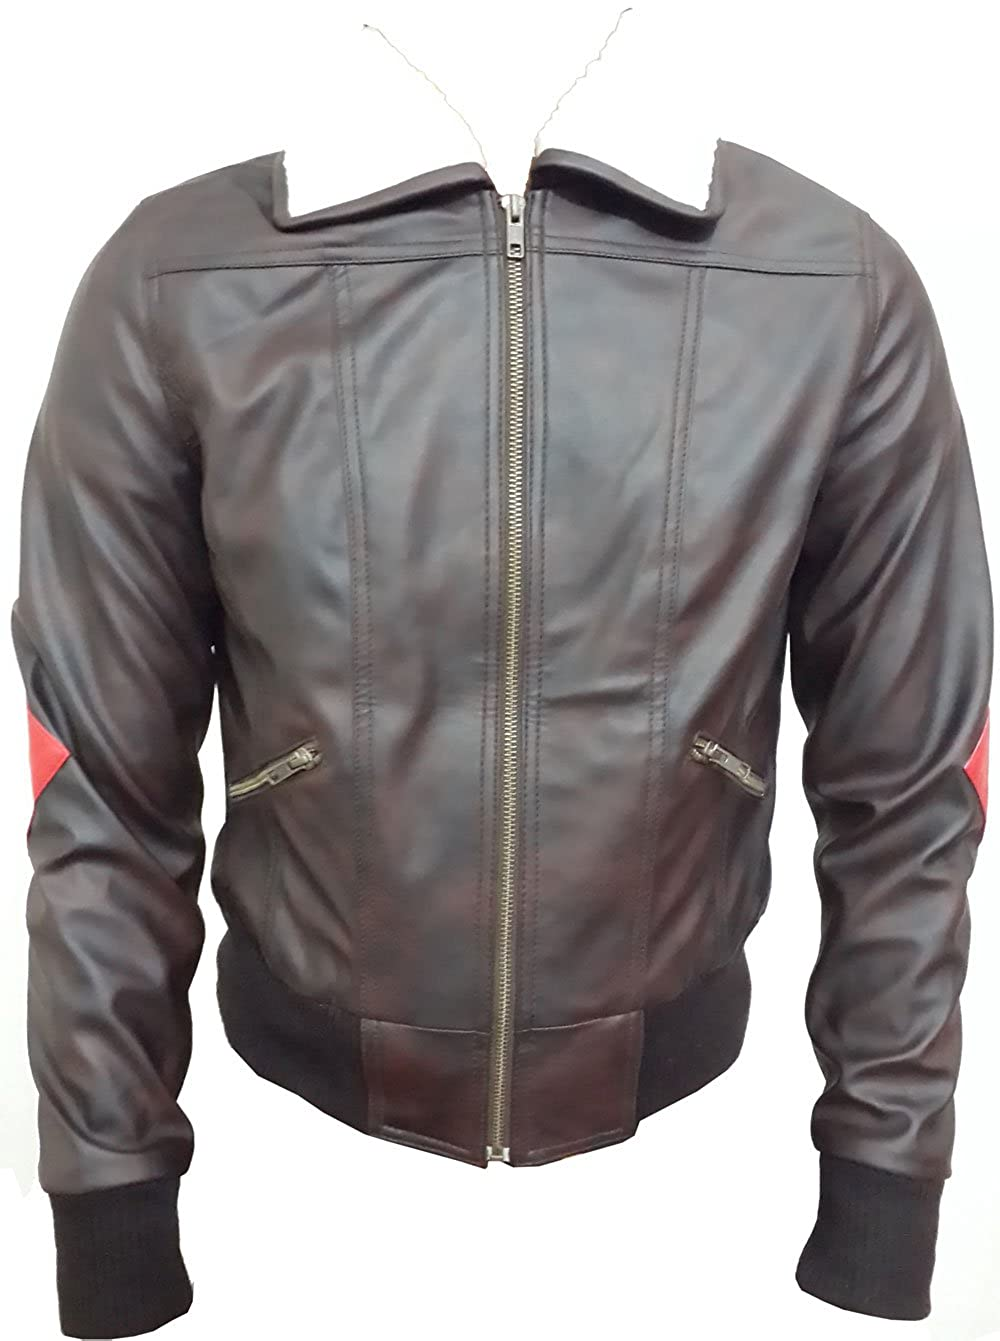 Fashion Xone Womens Celebrity Costume Faux Leather Jacket Sale Offer